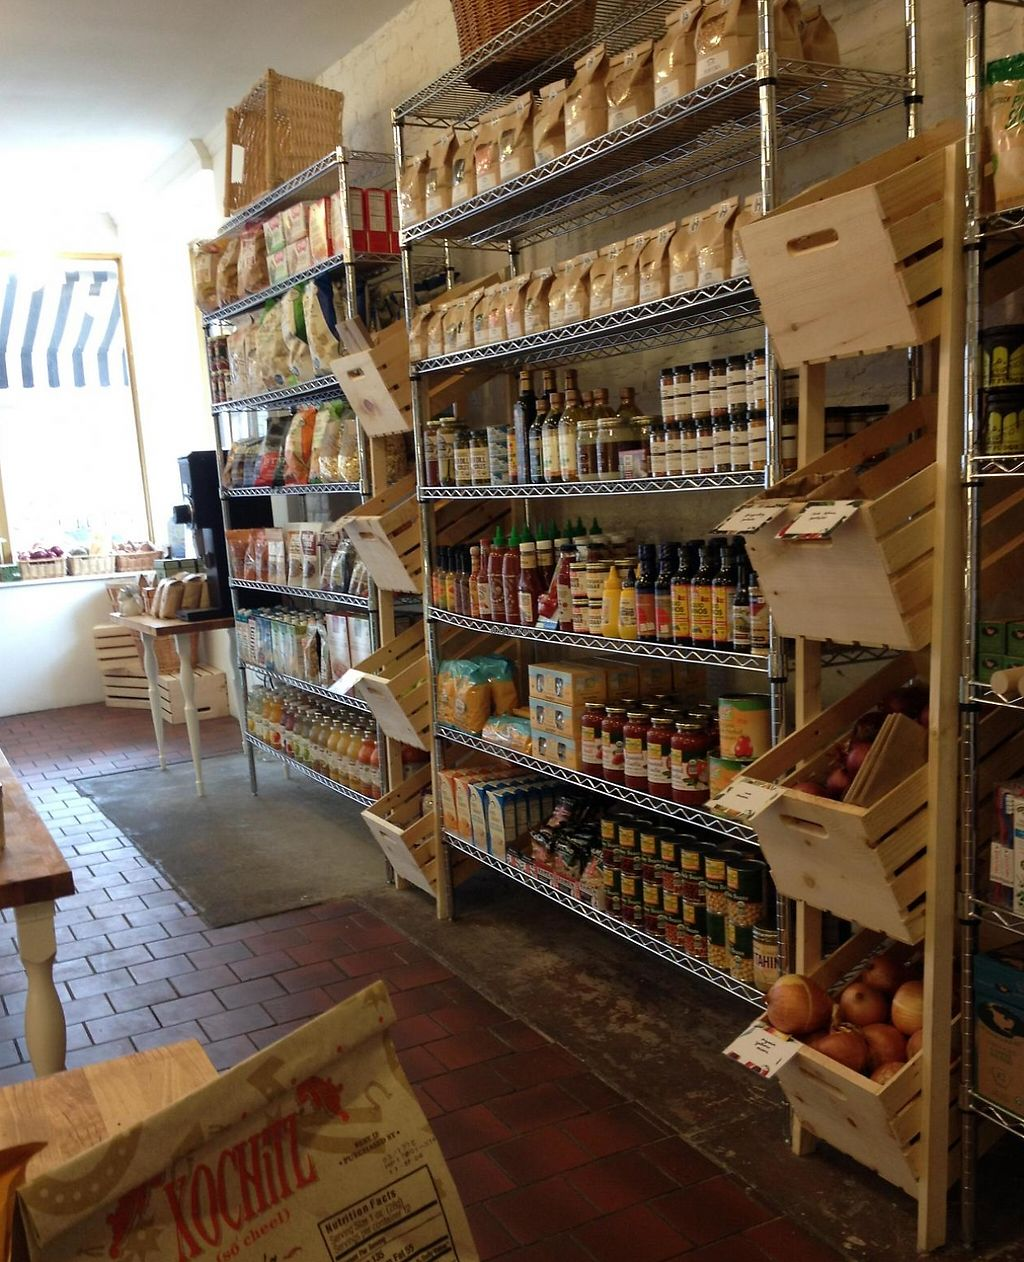 """Photo of CLOSED: Haymaker's Corner Store  by <a href=""""/members/profile/vegan_ryan"""">vegan_ryan</a> <br/>Inside of store <br/> March 16, 2015  - <a href='/contact/abuse/image/56048/212329'>Report</a>"""